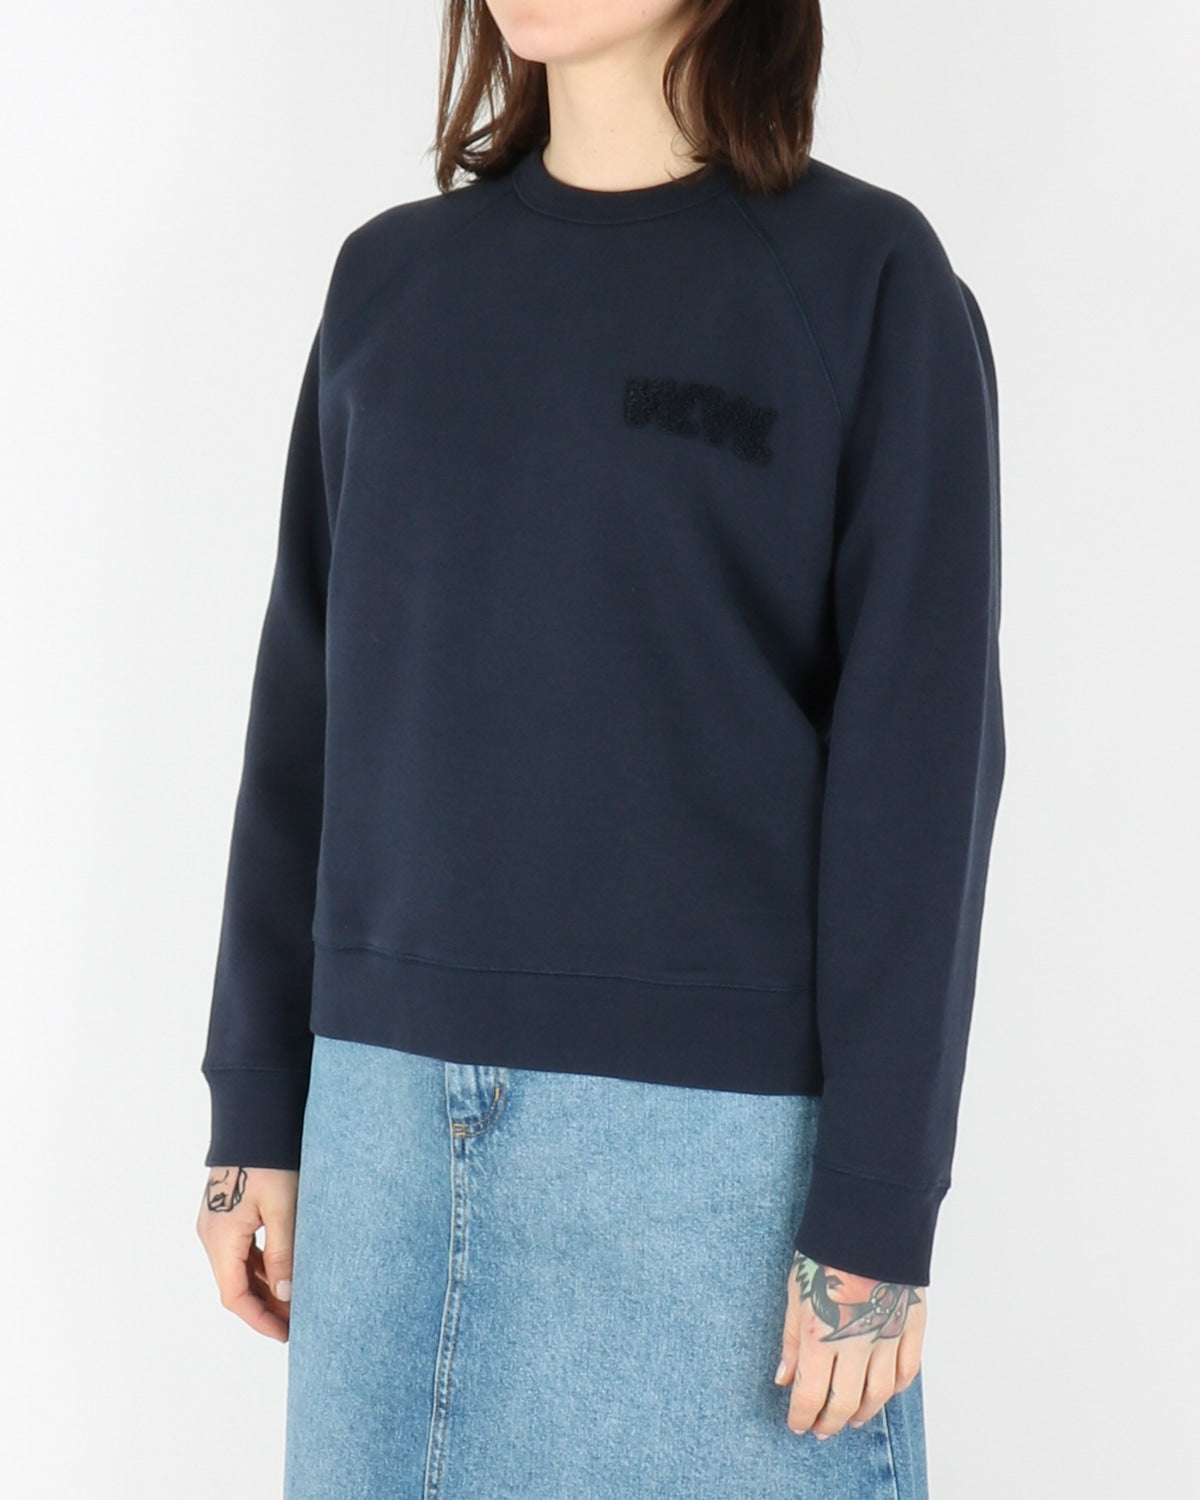 wood wood_jerri sweatshirt_navy_view_1_2